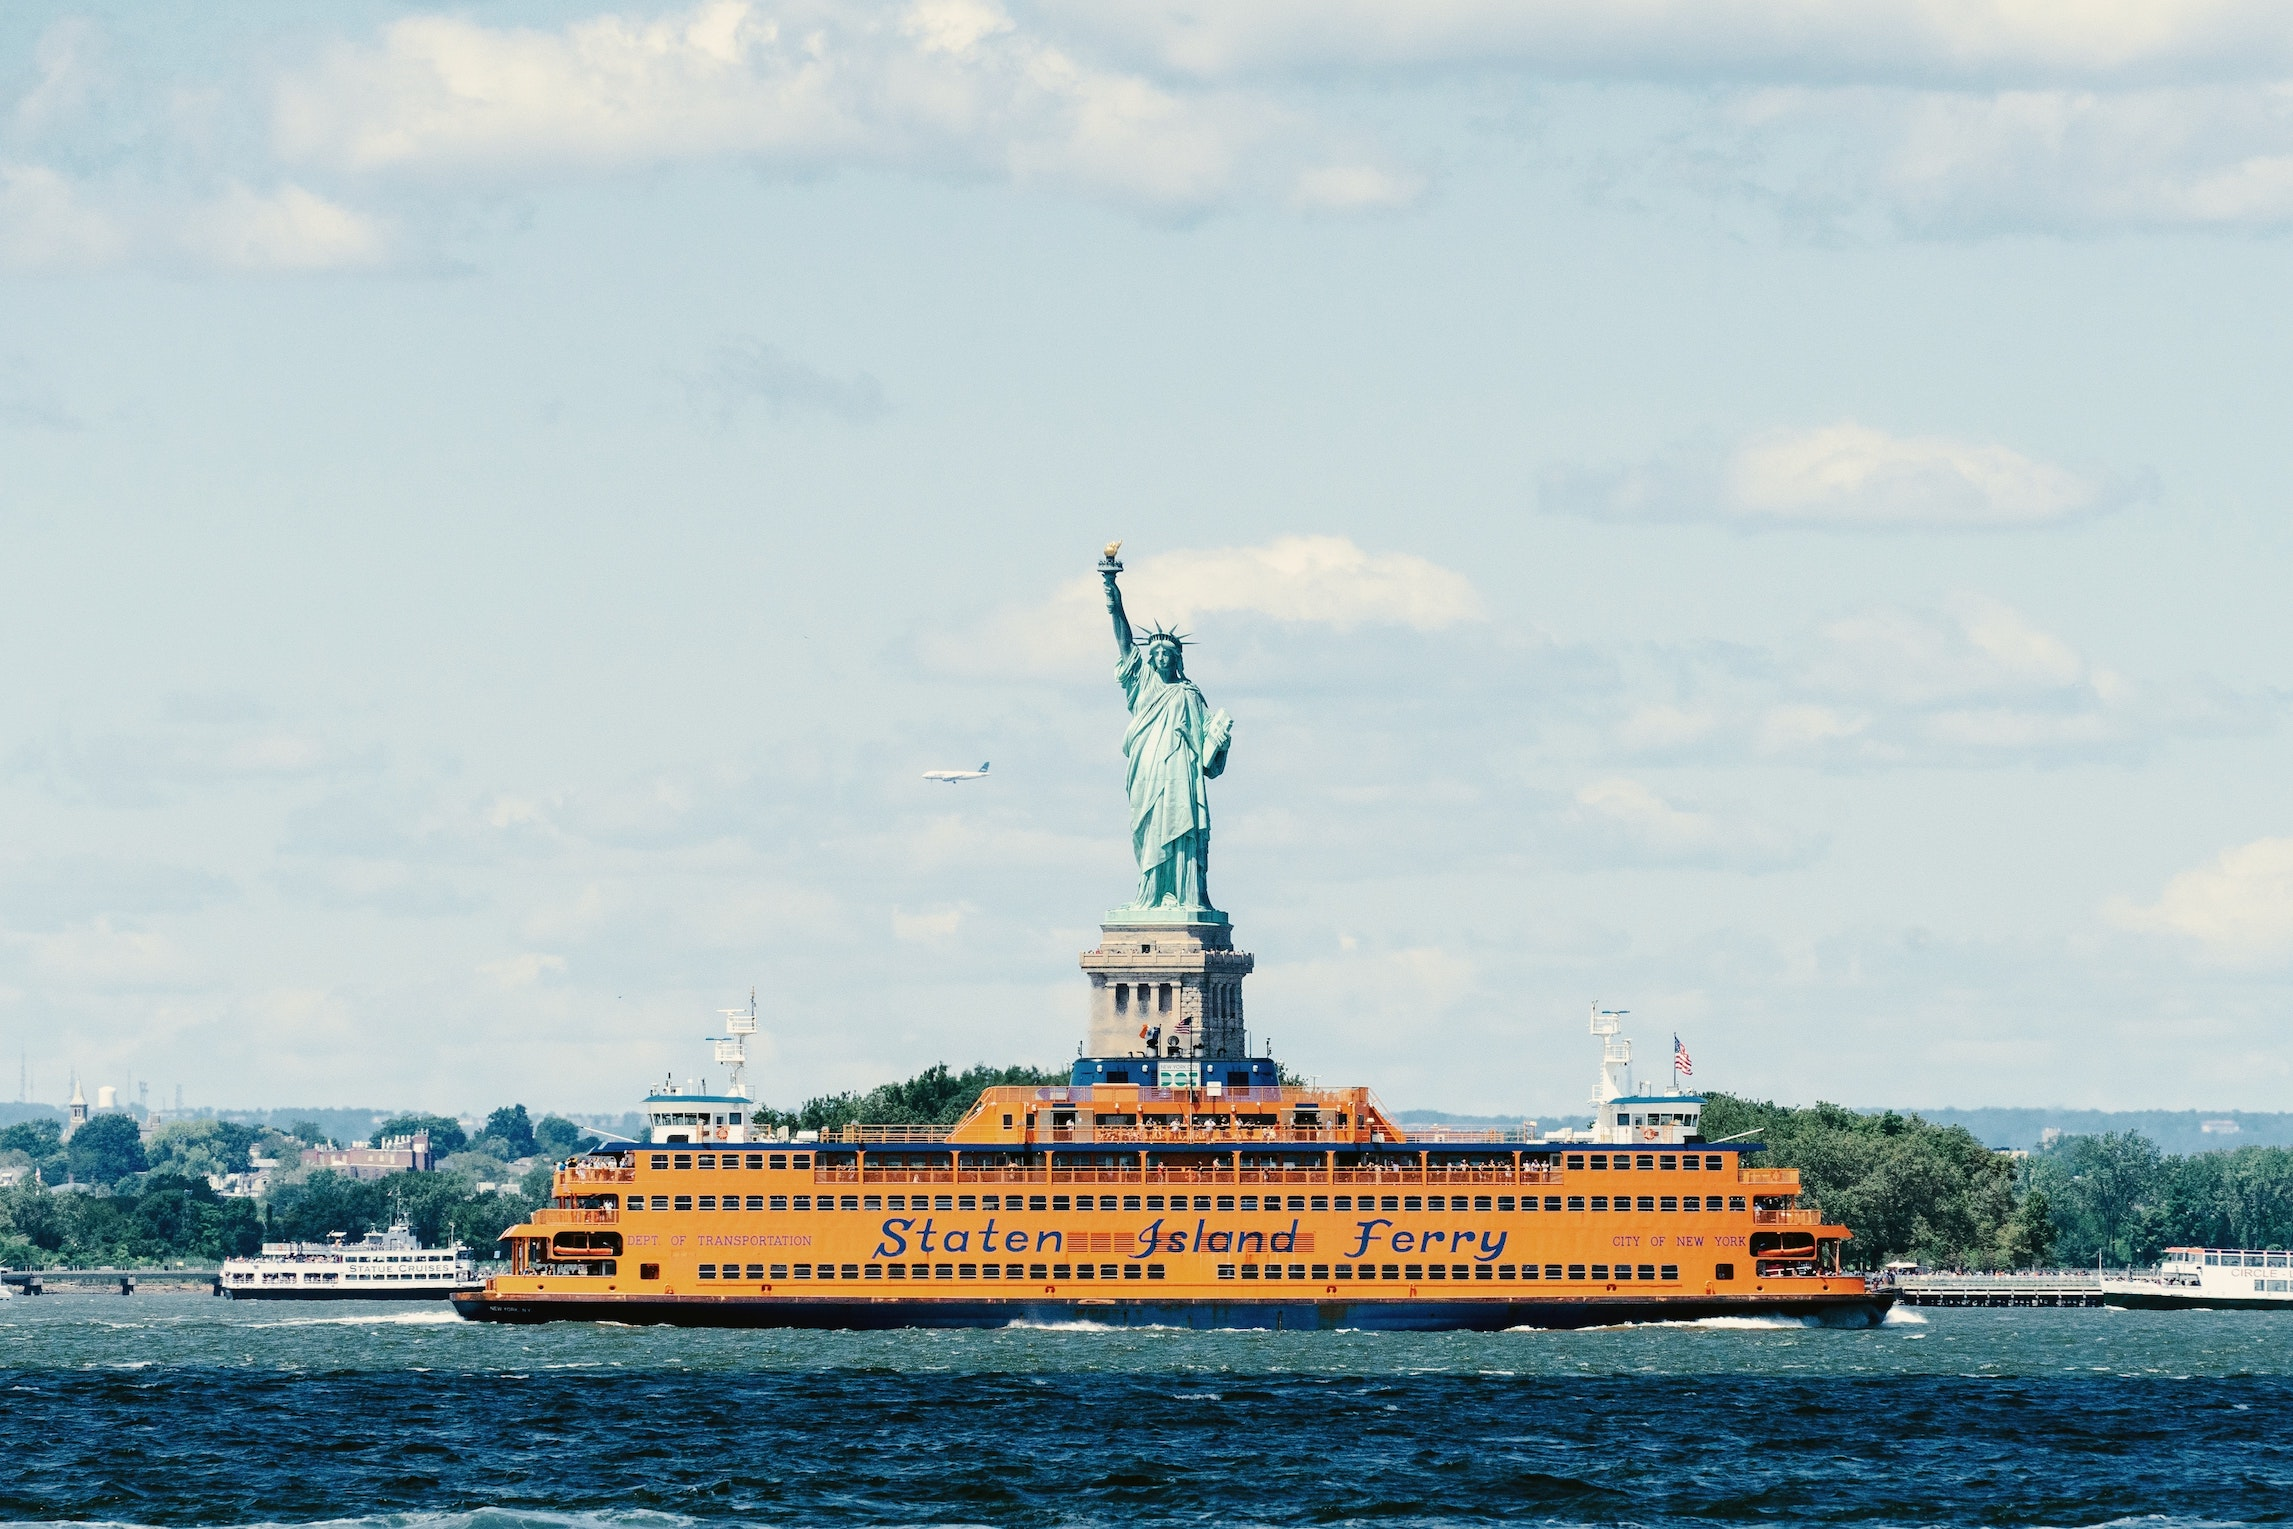 statue of liberty ferry and luggage storage